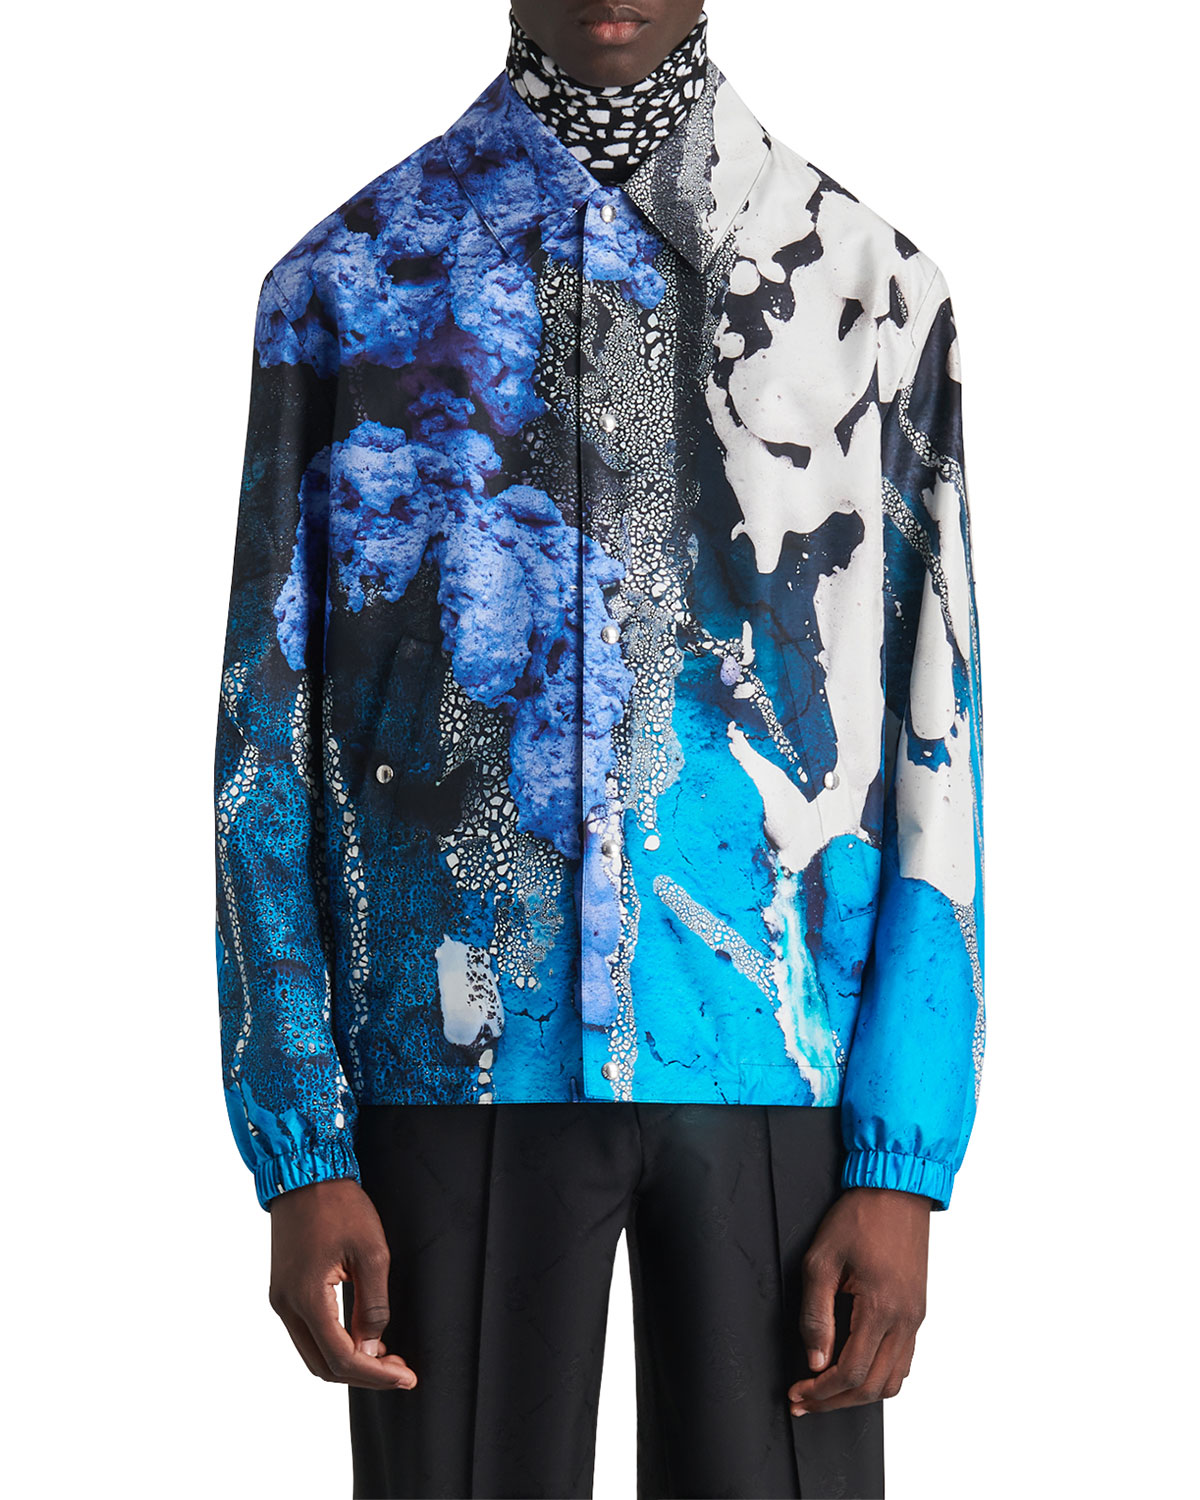 Berluti MEN'S PRINTED SILK SHIRT JACKET